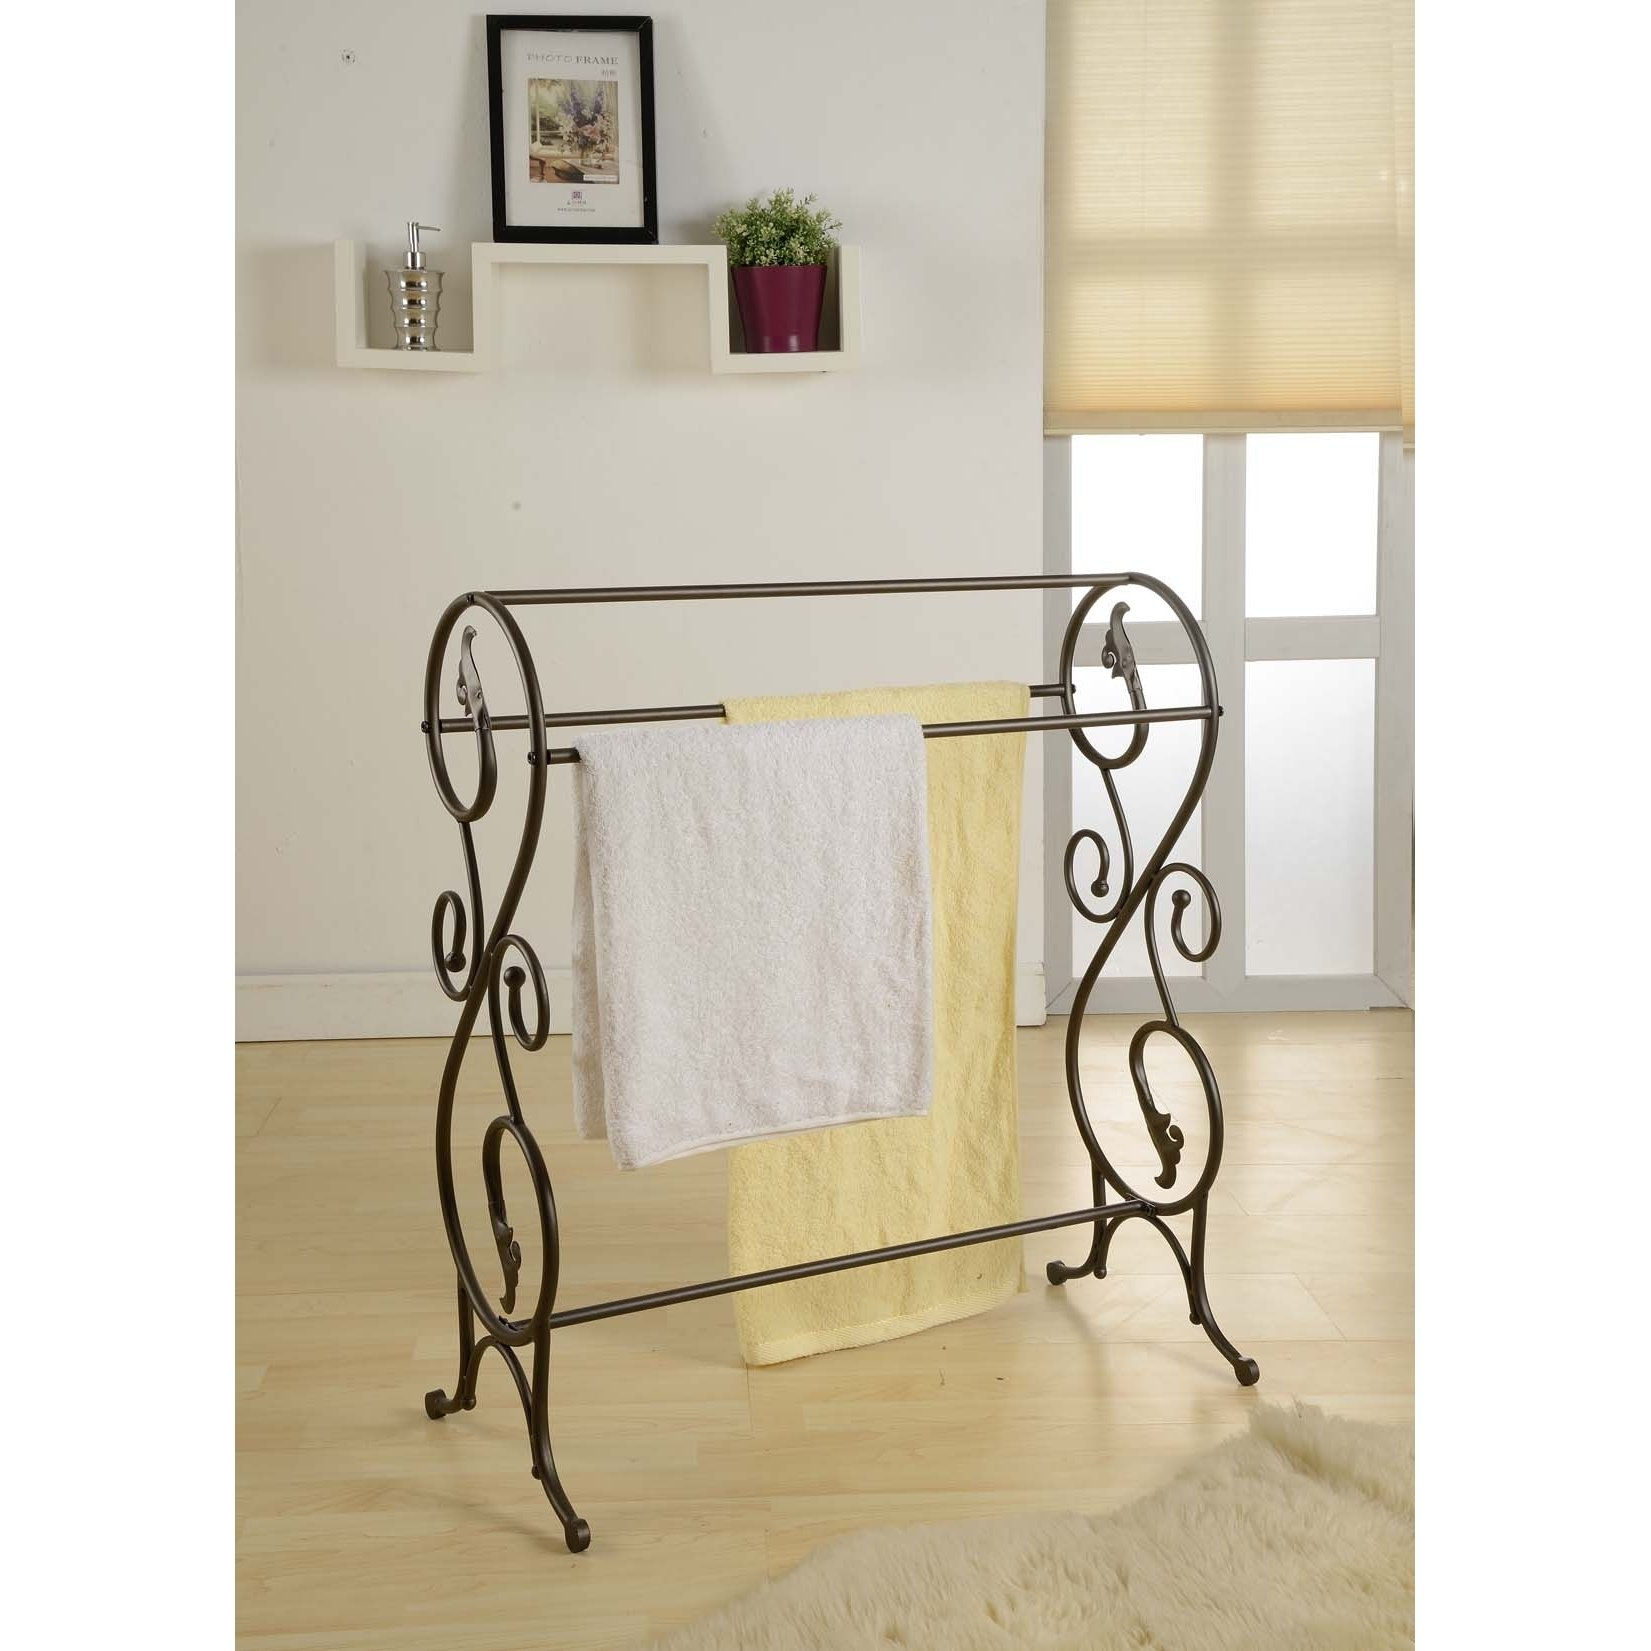 King's Brand 1410 Antique Style Pewter Finish Towel Rack Stand by King's Brand